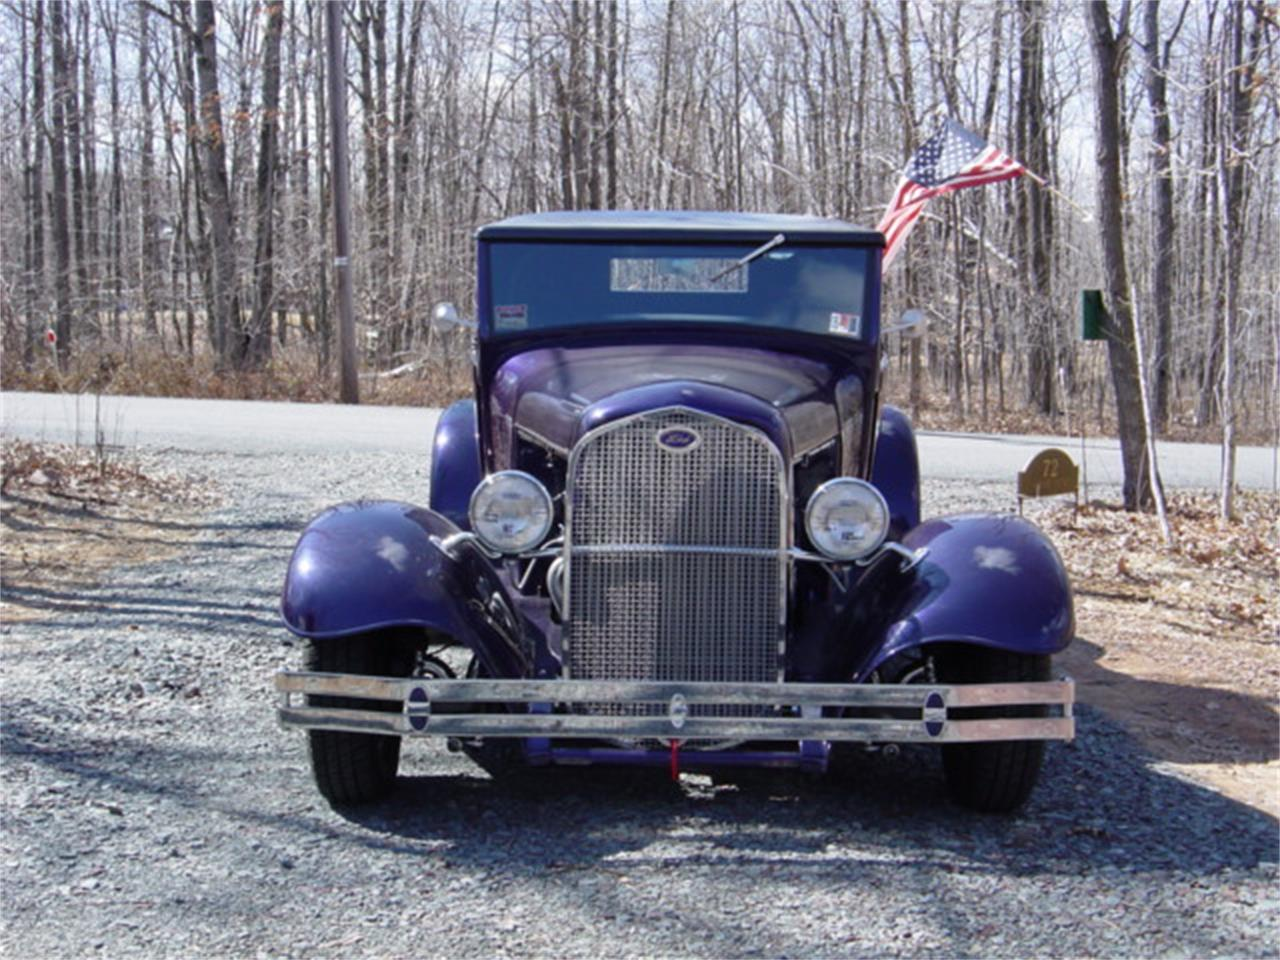 Large Picture of '29 Ford Roadster located in Albrightsville Pennsylvania - $26,000.00 - CIWT